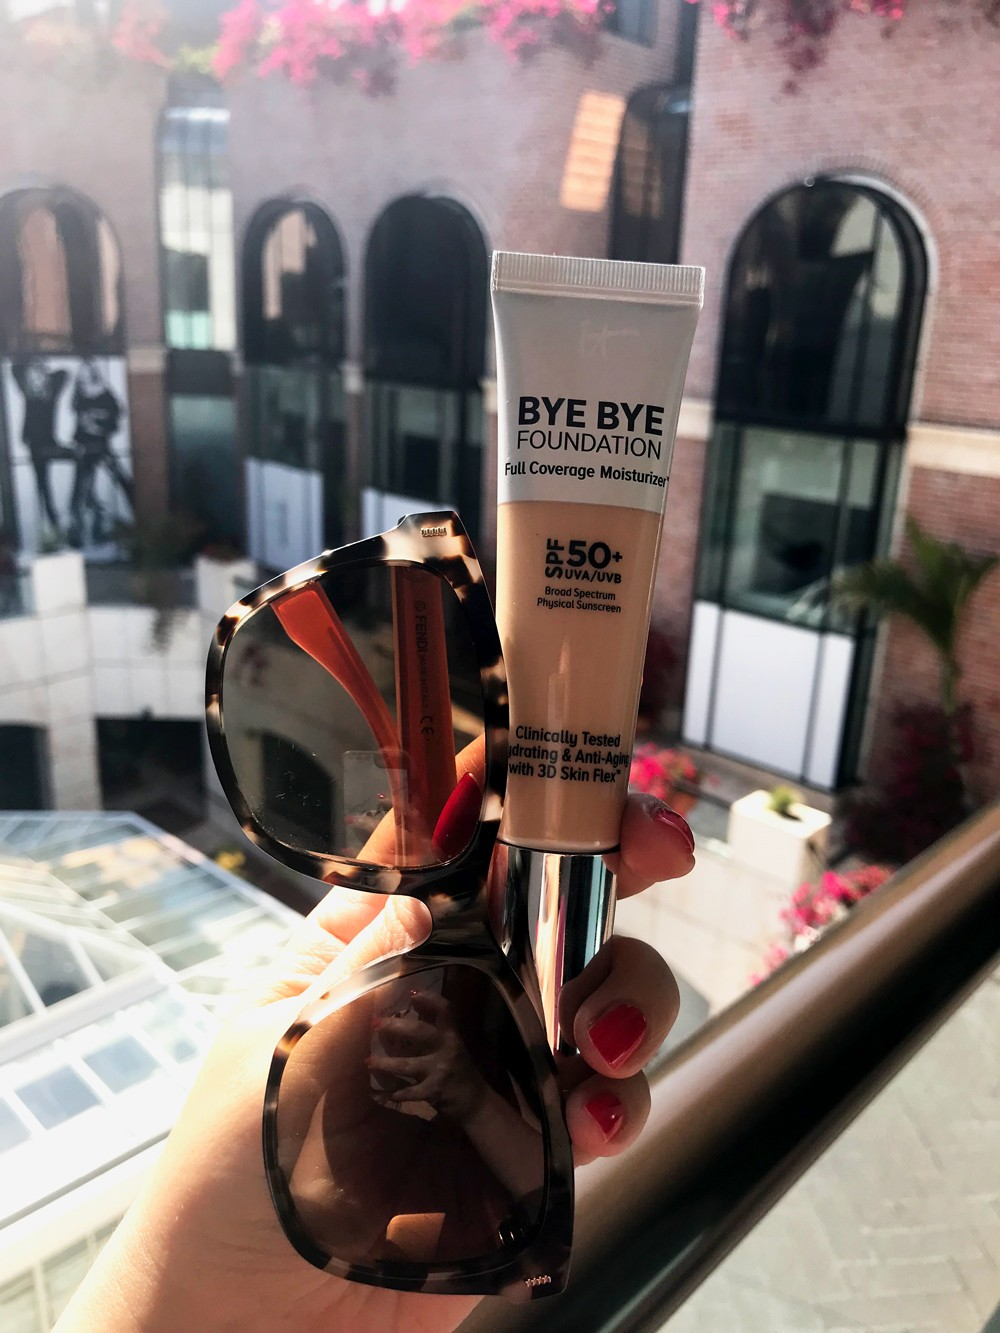 Sunglasses and SPF   PiQo4 Laser - the Only Melasma Treatment that has Ever Worked for Me! featured by popular Los Angeles cruely free beauty blogger My Beauty Bunny